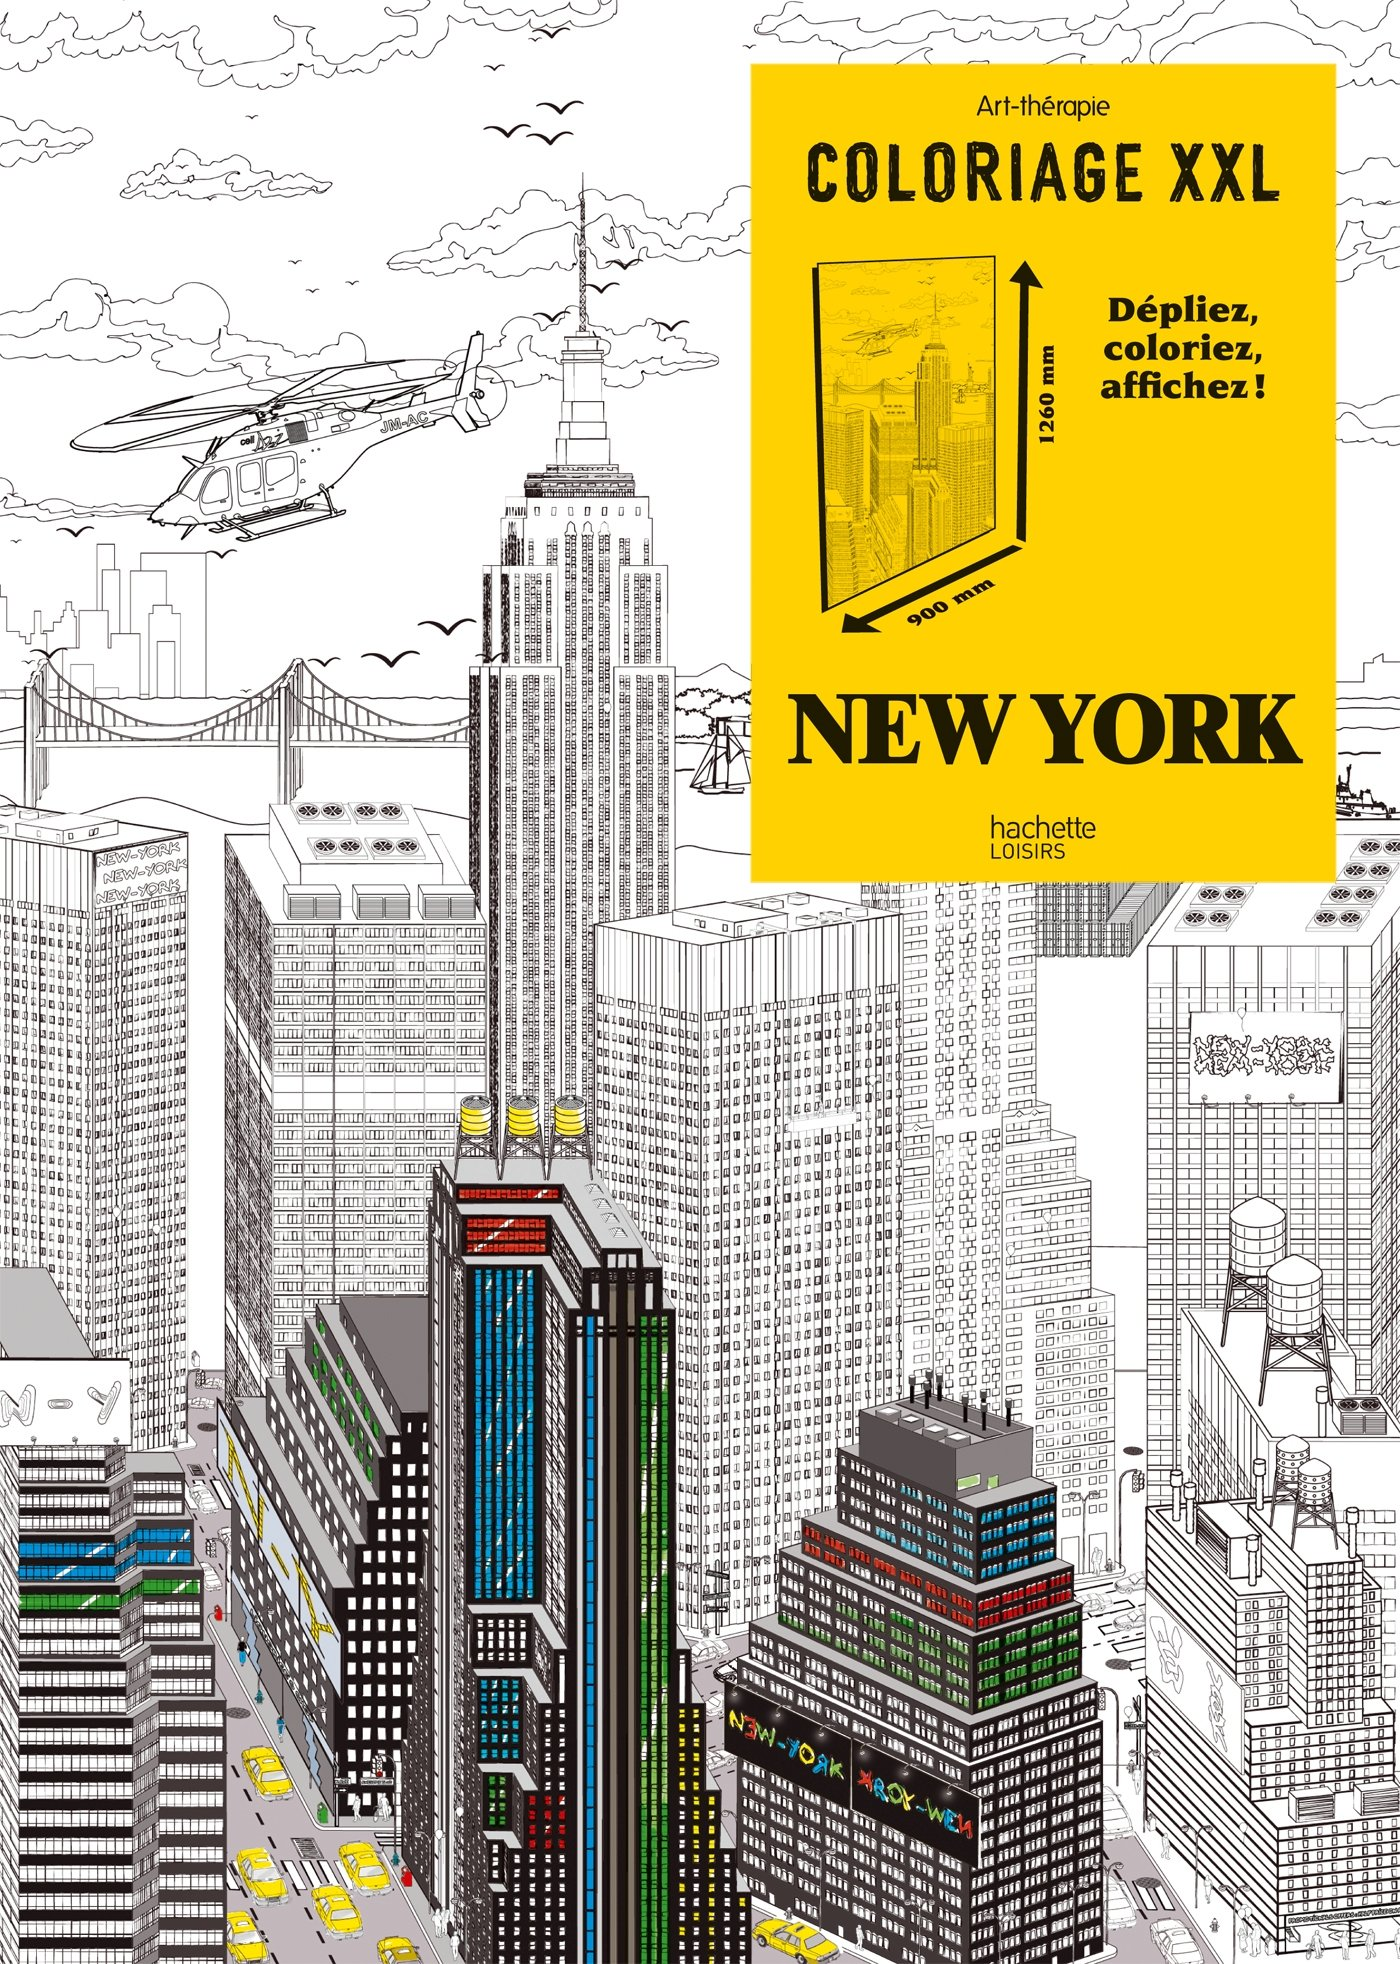 Coloriage Xxl New York Coloring Book New York French Edition